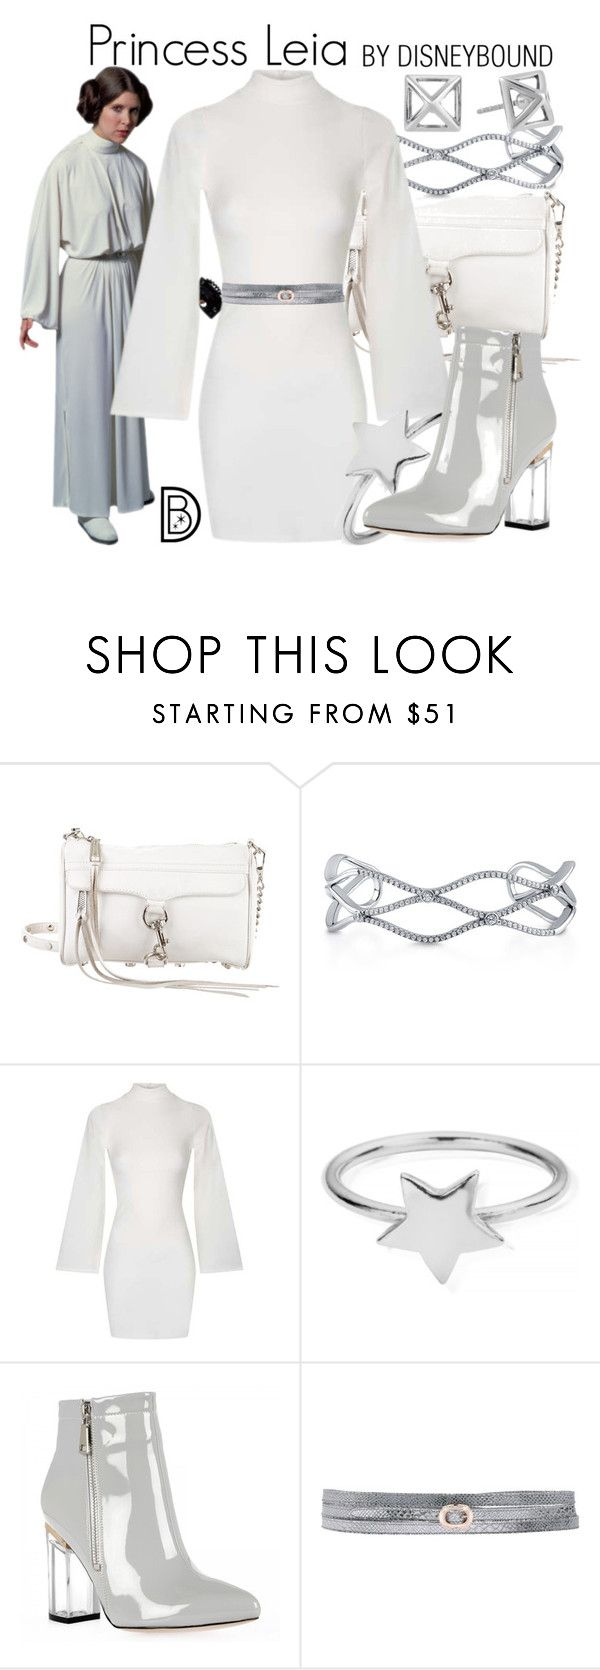 """Princess Leia"" by leslieakay ❤ liked on Polyvore featuring Rebecca Minkoff, BERRICLE, Topshop, ChloBo, Good On Heels, disney, disneybound and starwars"